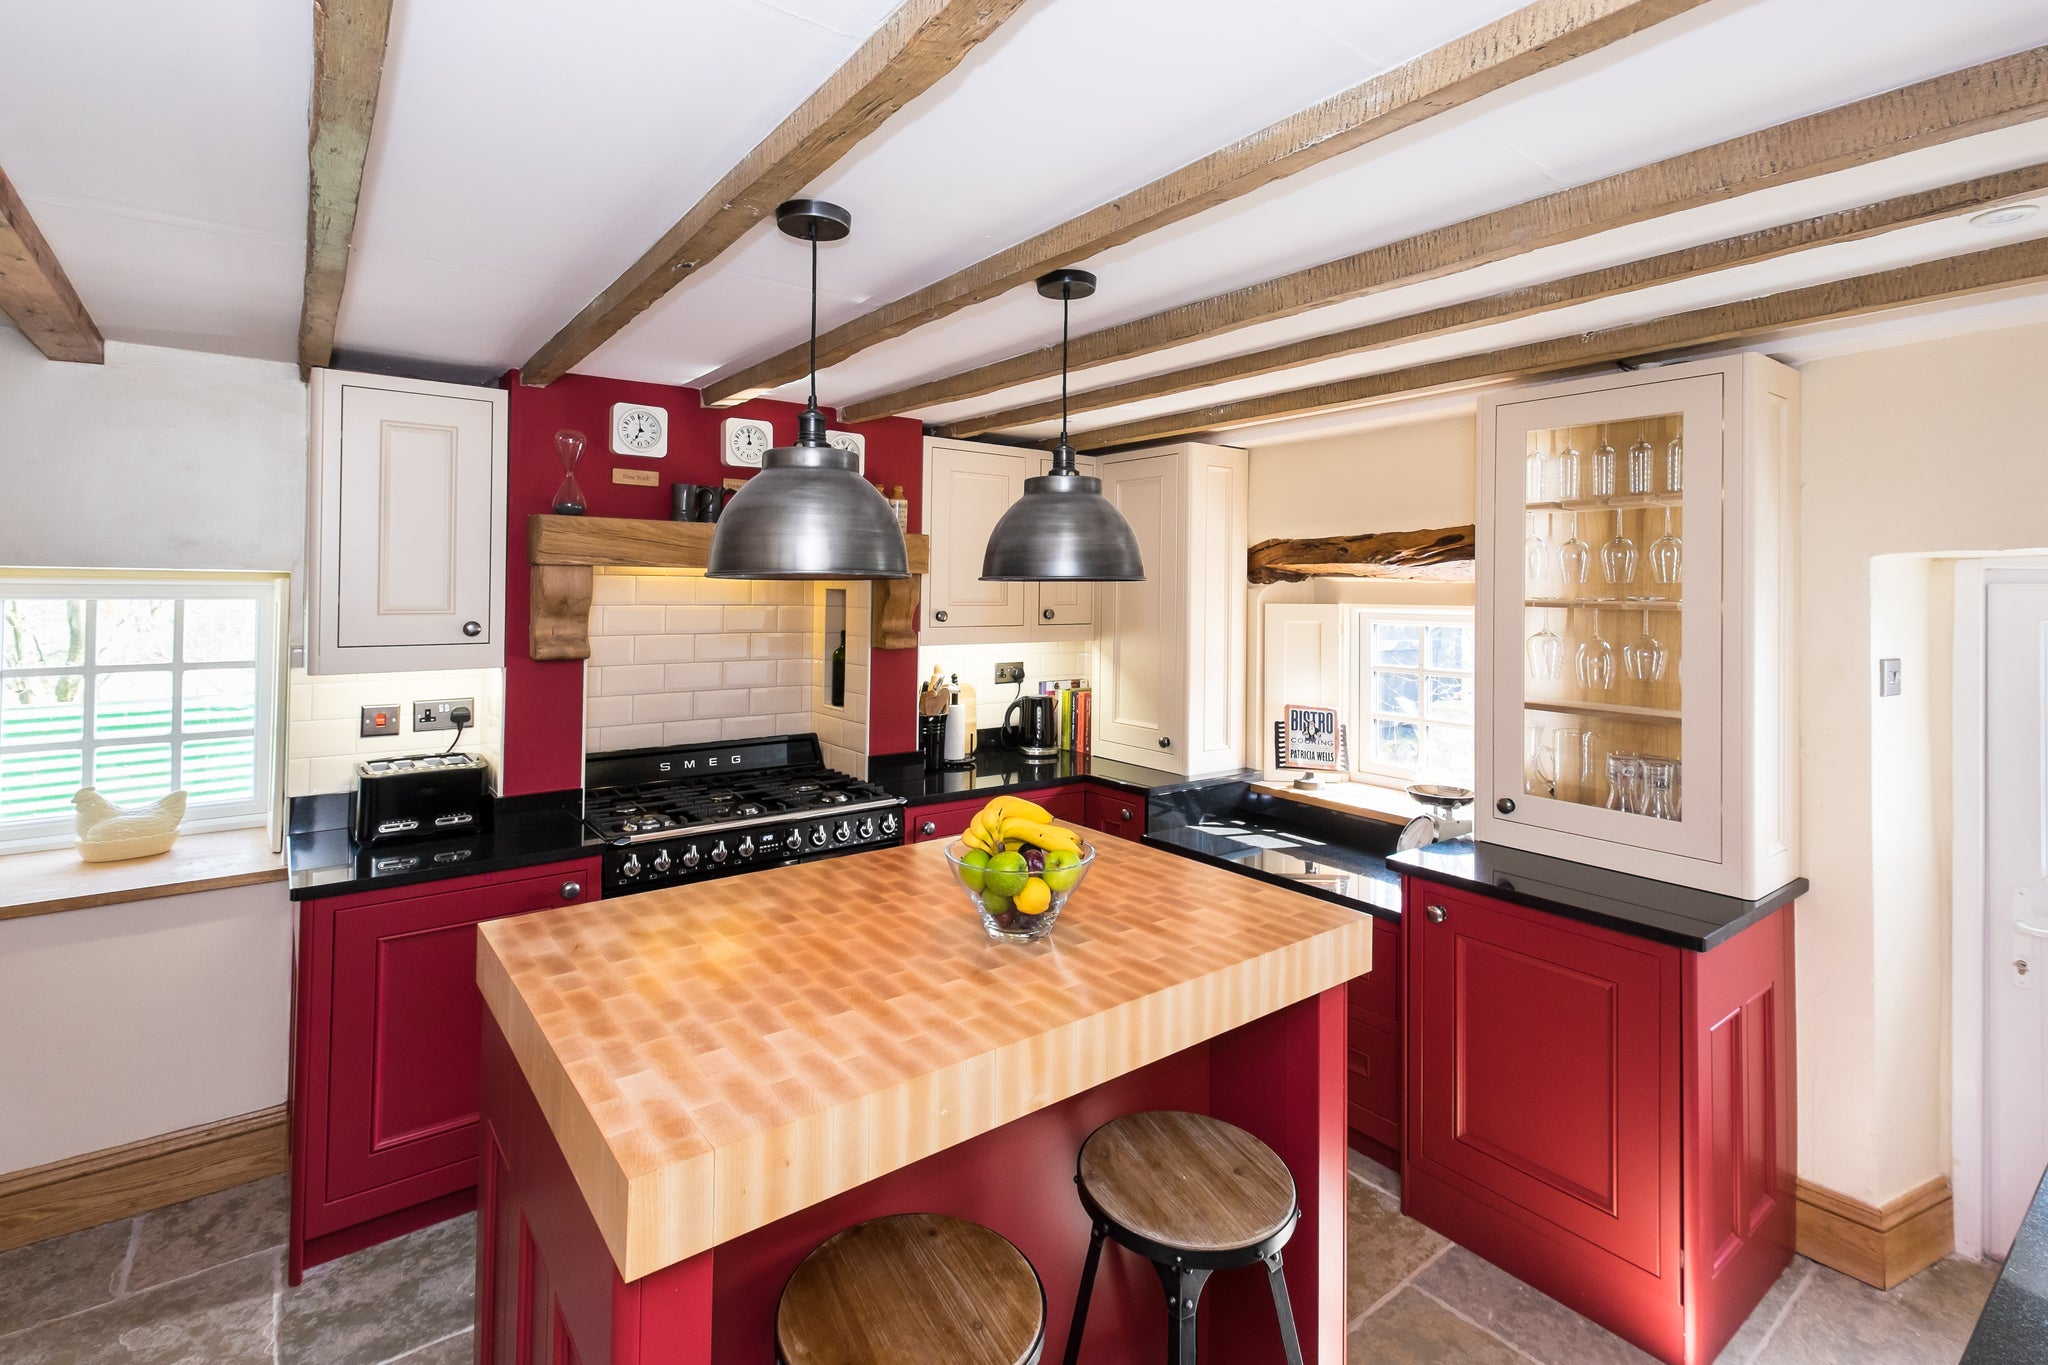 Red interior kitchen design with metallic lights